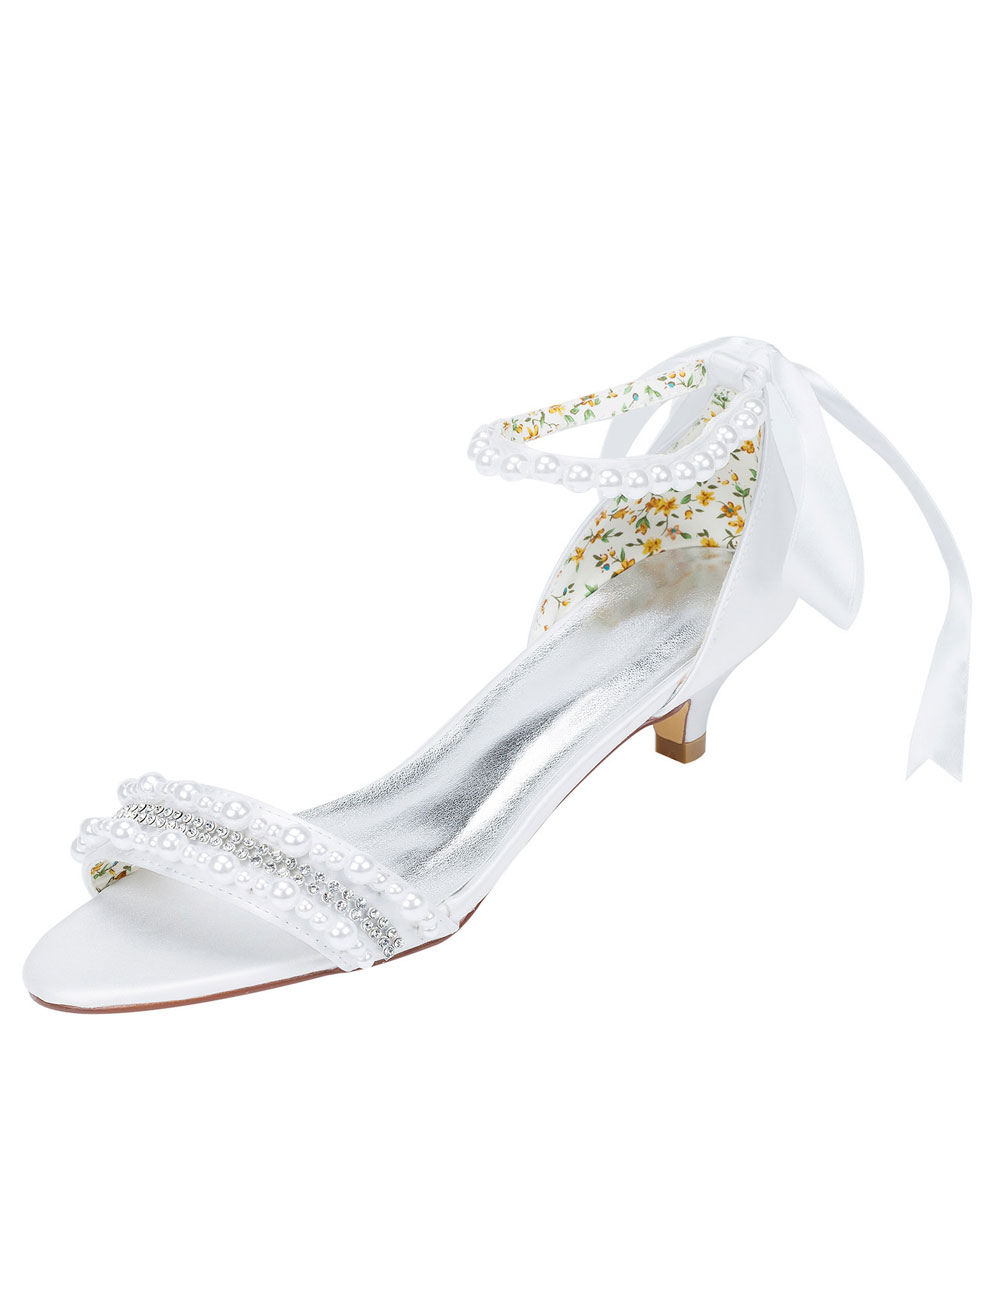 Buy White Wedding Shoes Kitten Heel Sandals Pearl Rhinestone Ankle Strap Bridal Shoes With Ribbon Bow for $51.29 in Milanoo store